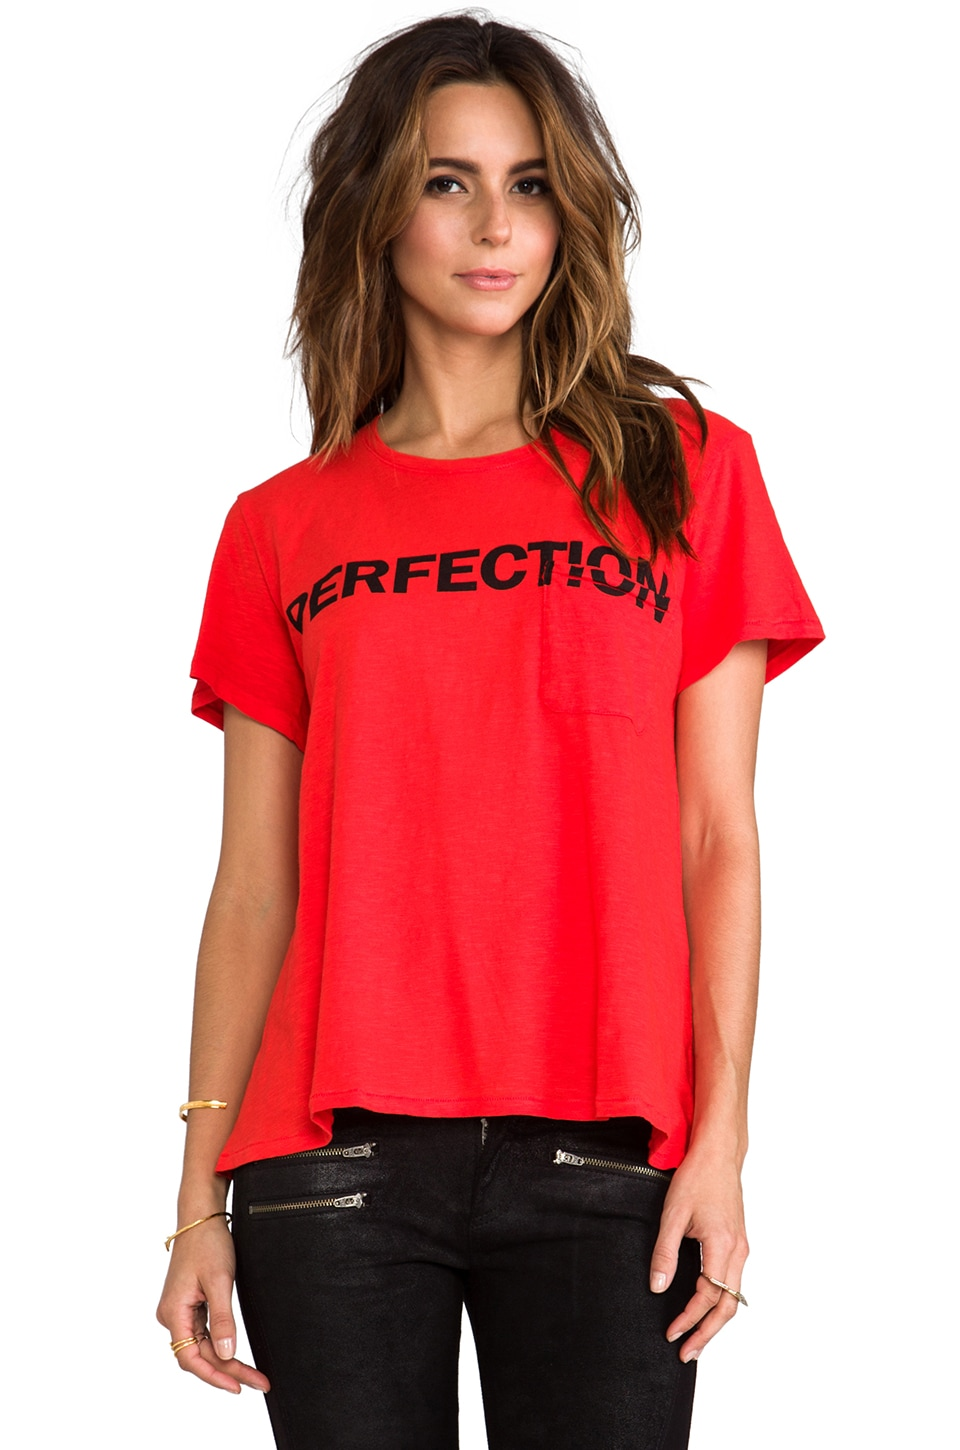 TEXTILE Elizabeth and James Perfection Bowery Tee in Empire Red/Black